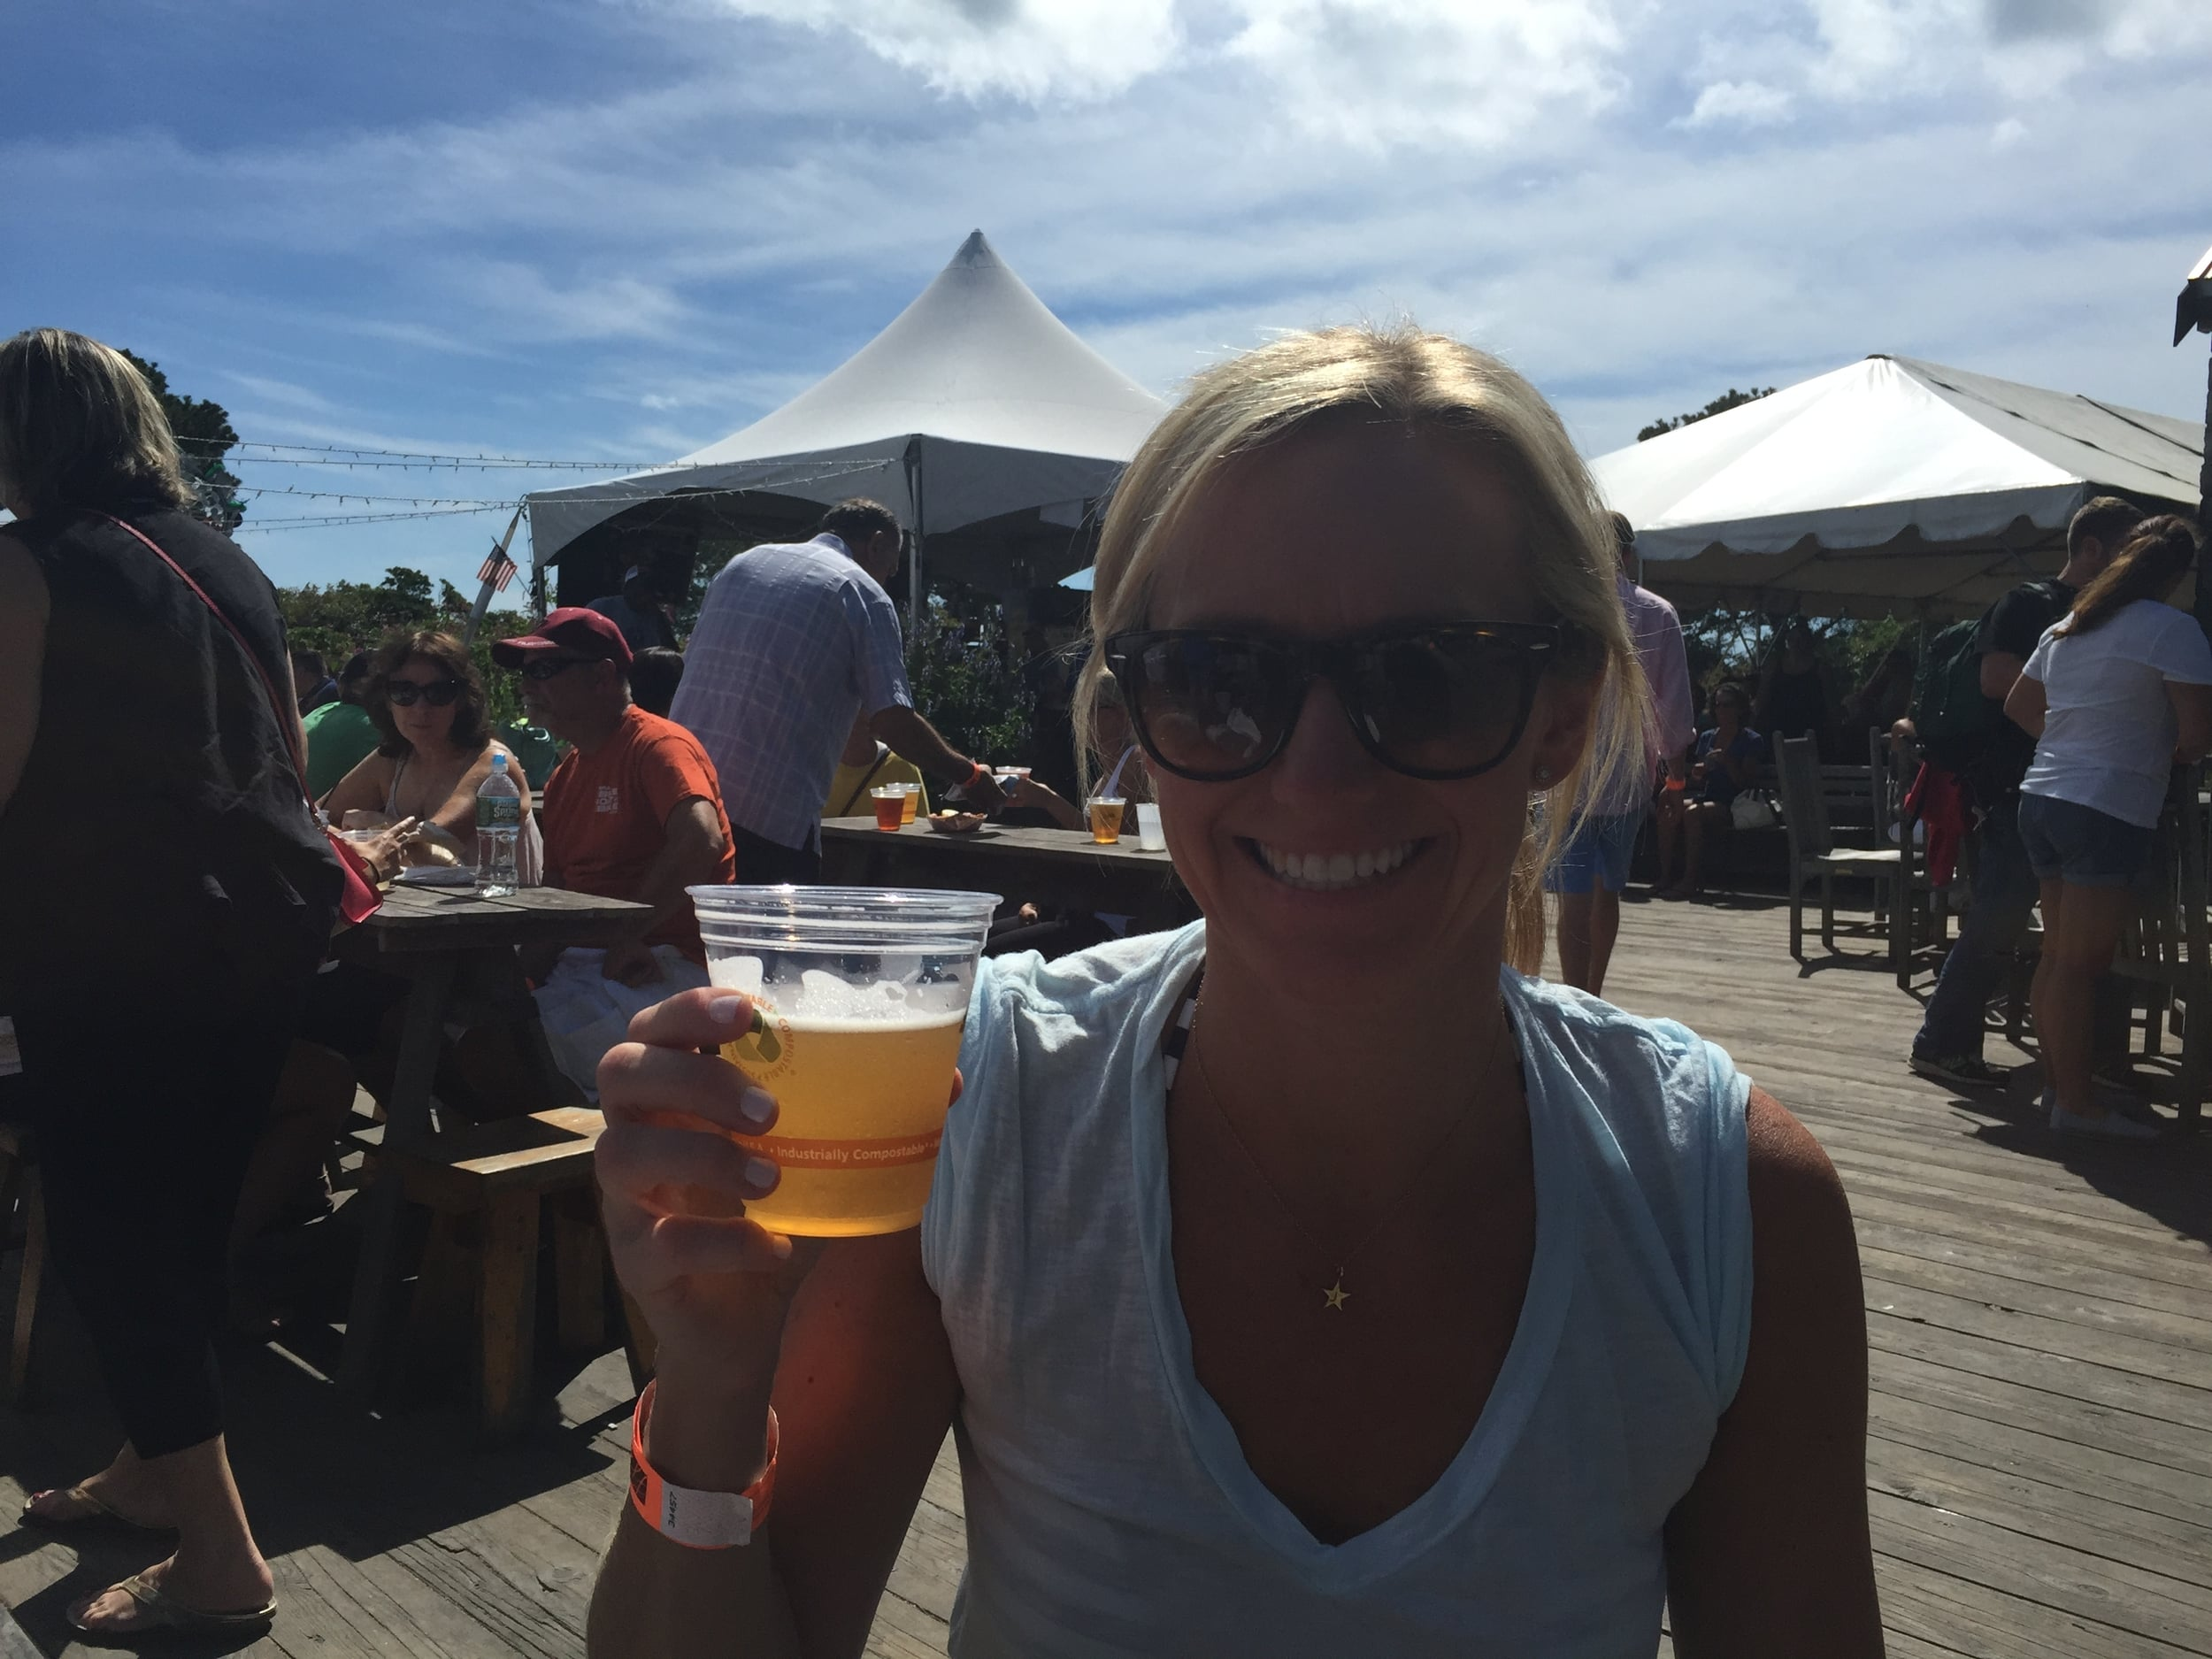 #ciscobrewers #patiodrinking #daydrinkingproblems #sometimesidrinkbeer #whalestale #sharktracker #nantucketweekend2015 #raybans #jcrew